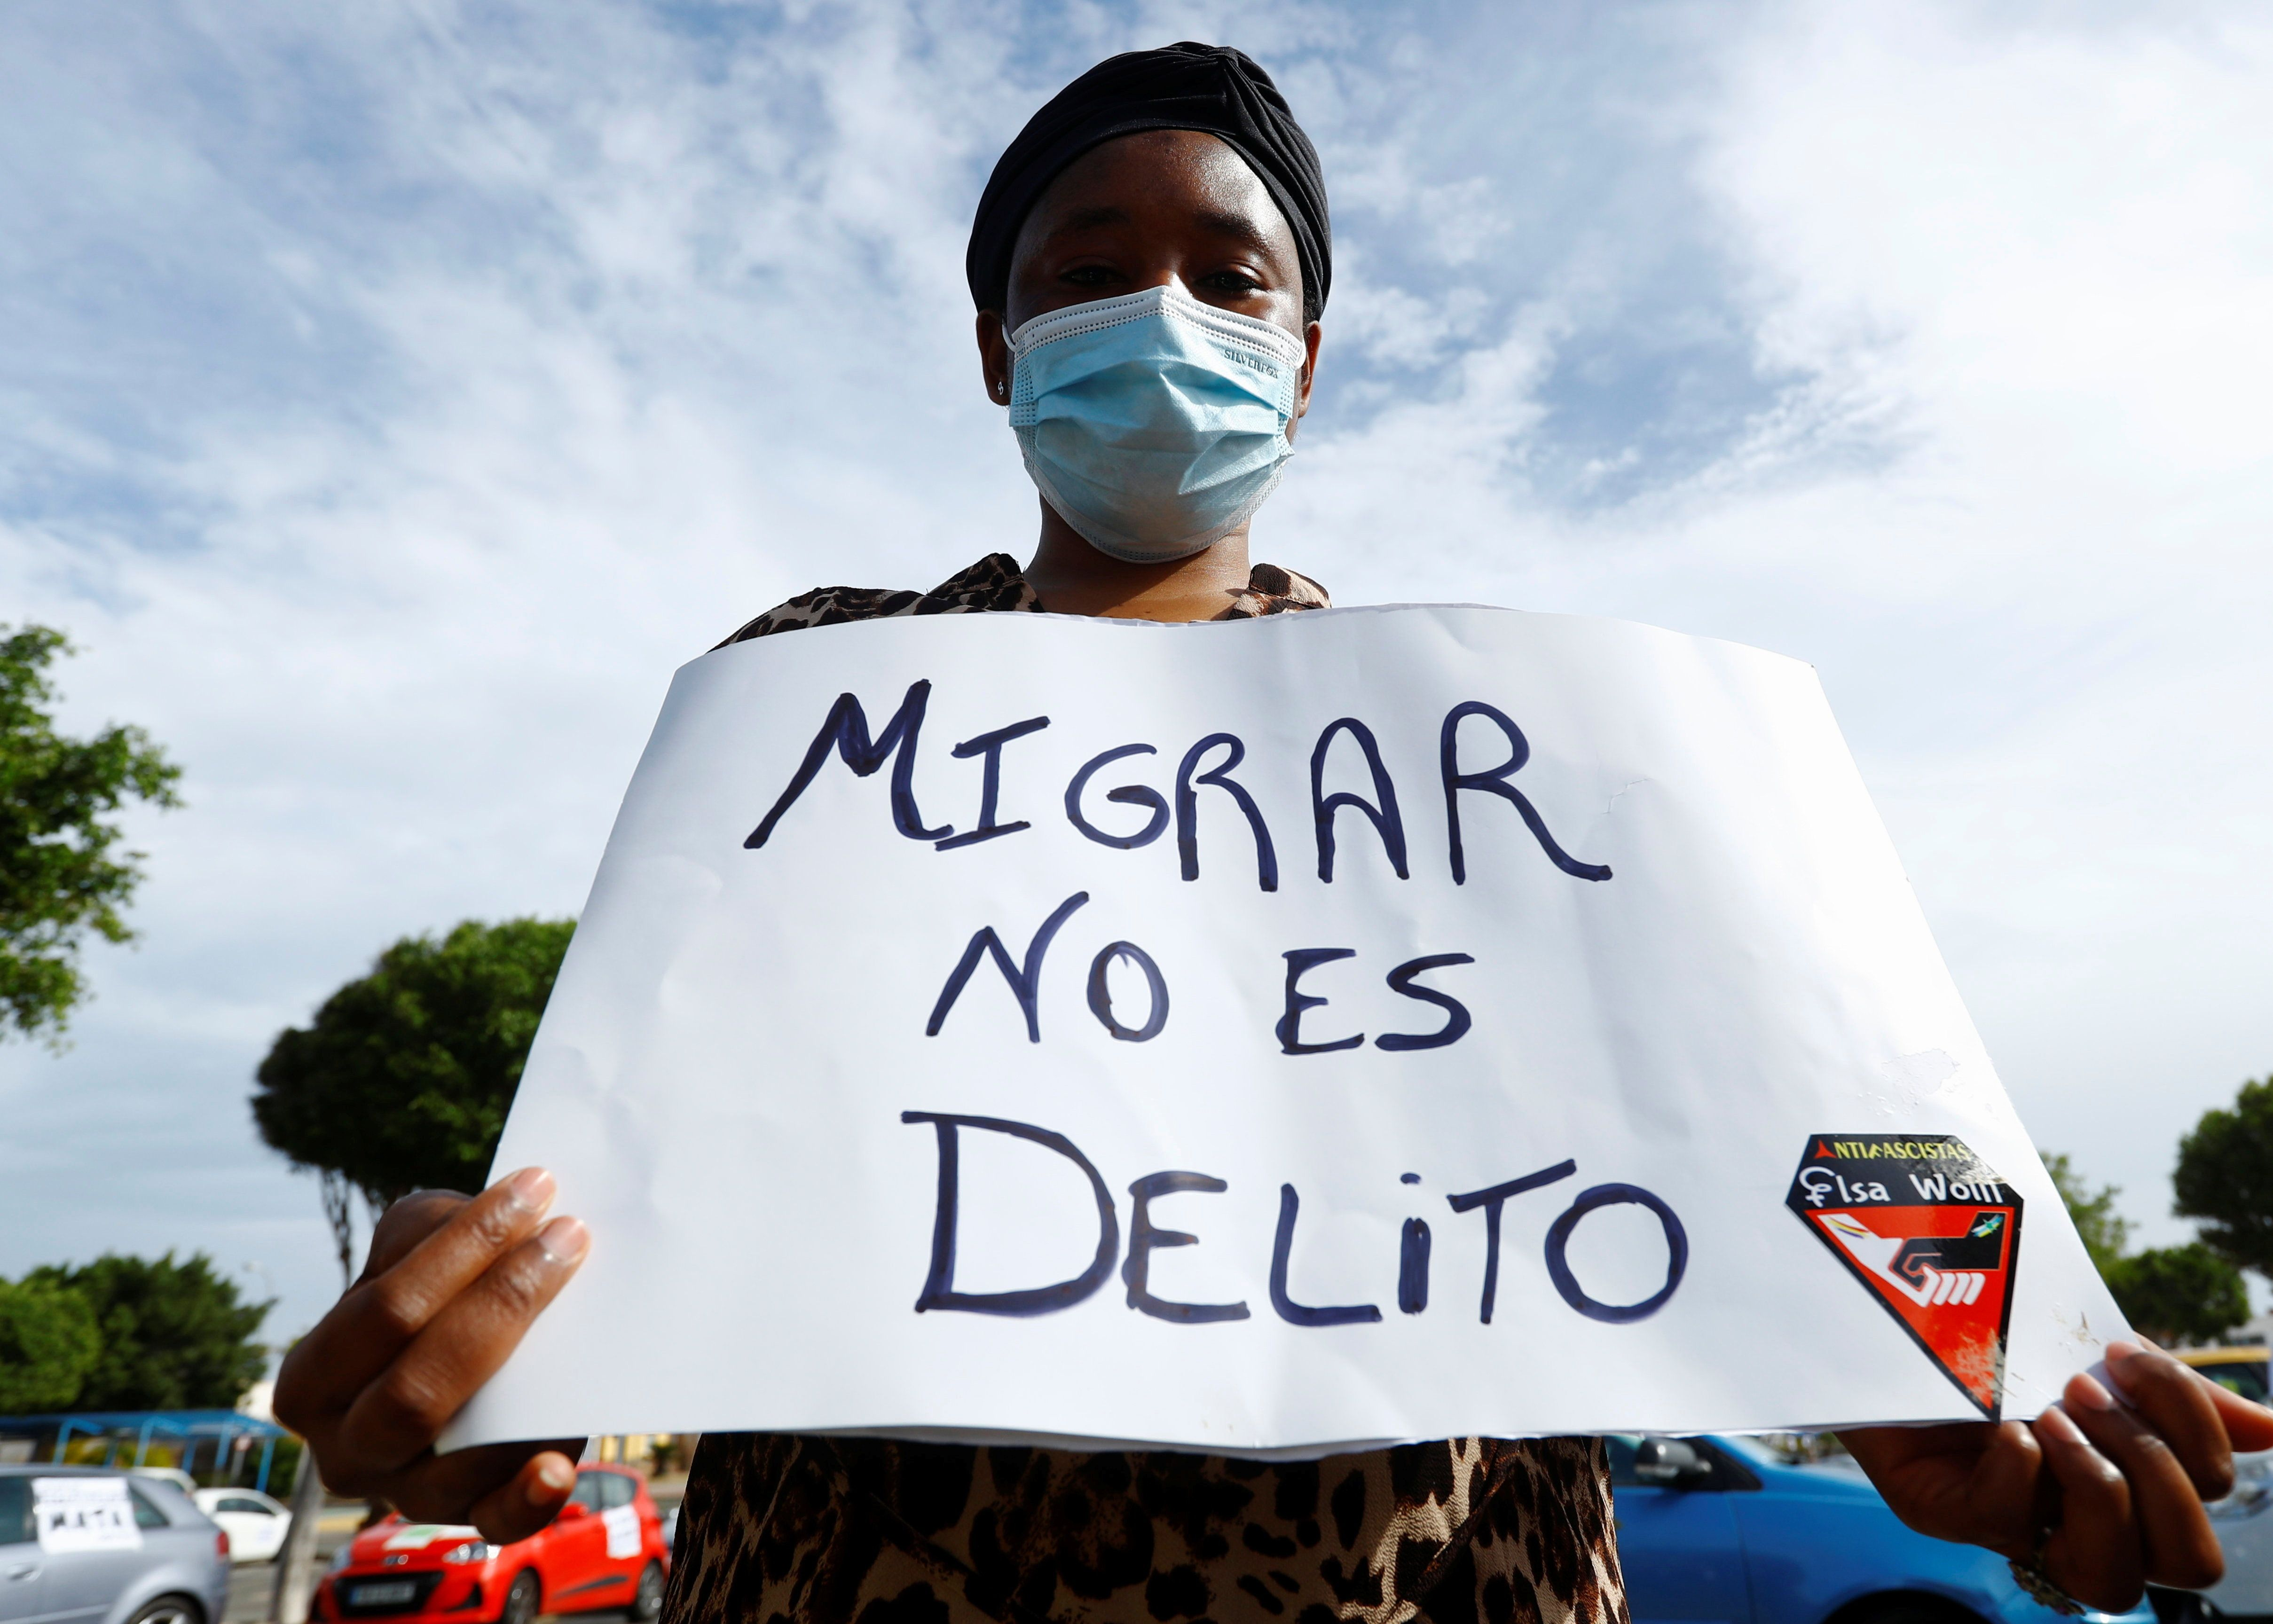 Demonstration in favor of the rights of migrants in the Canary Islands, Spain. Reuters